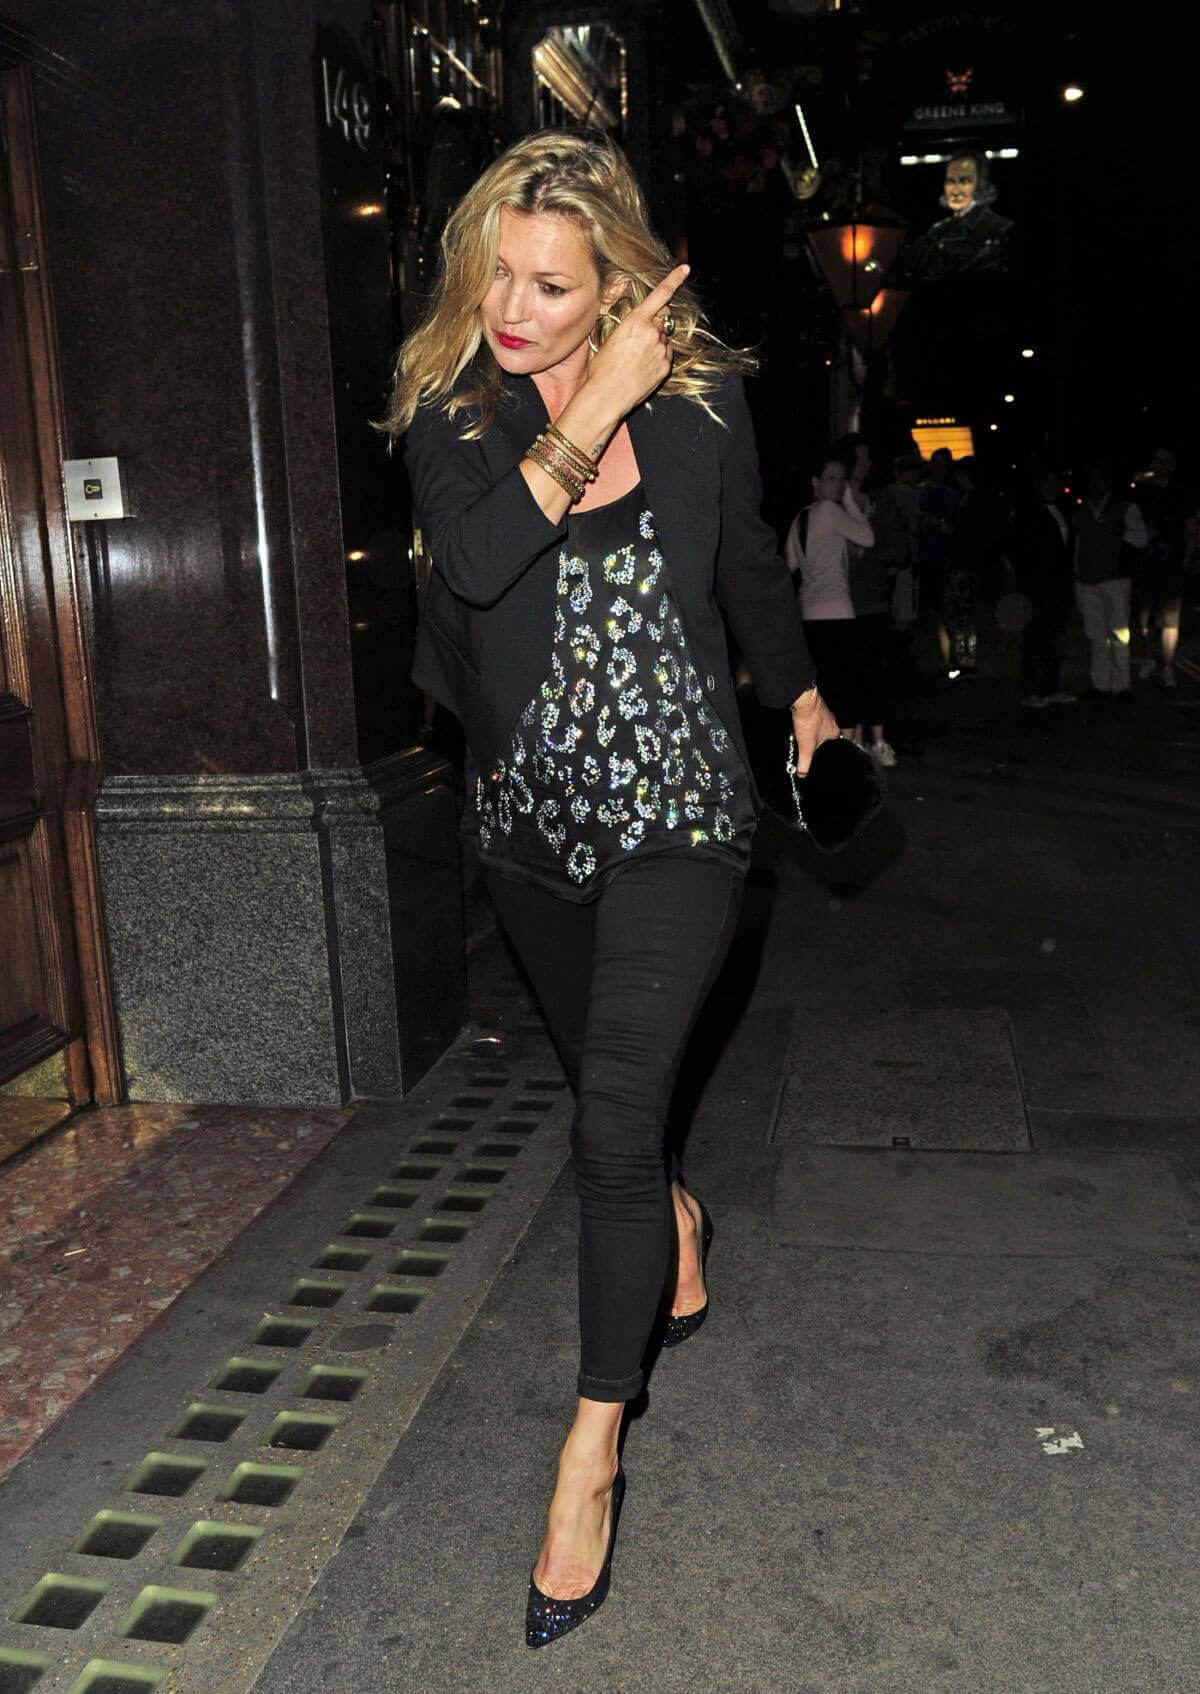 Kate Moss at Mr Chows Restaurant in London Photos